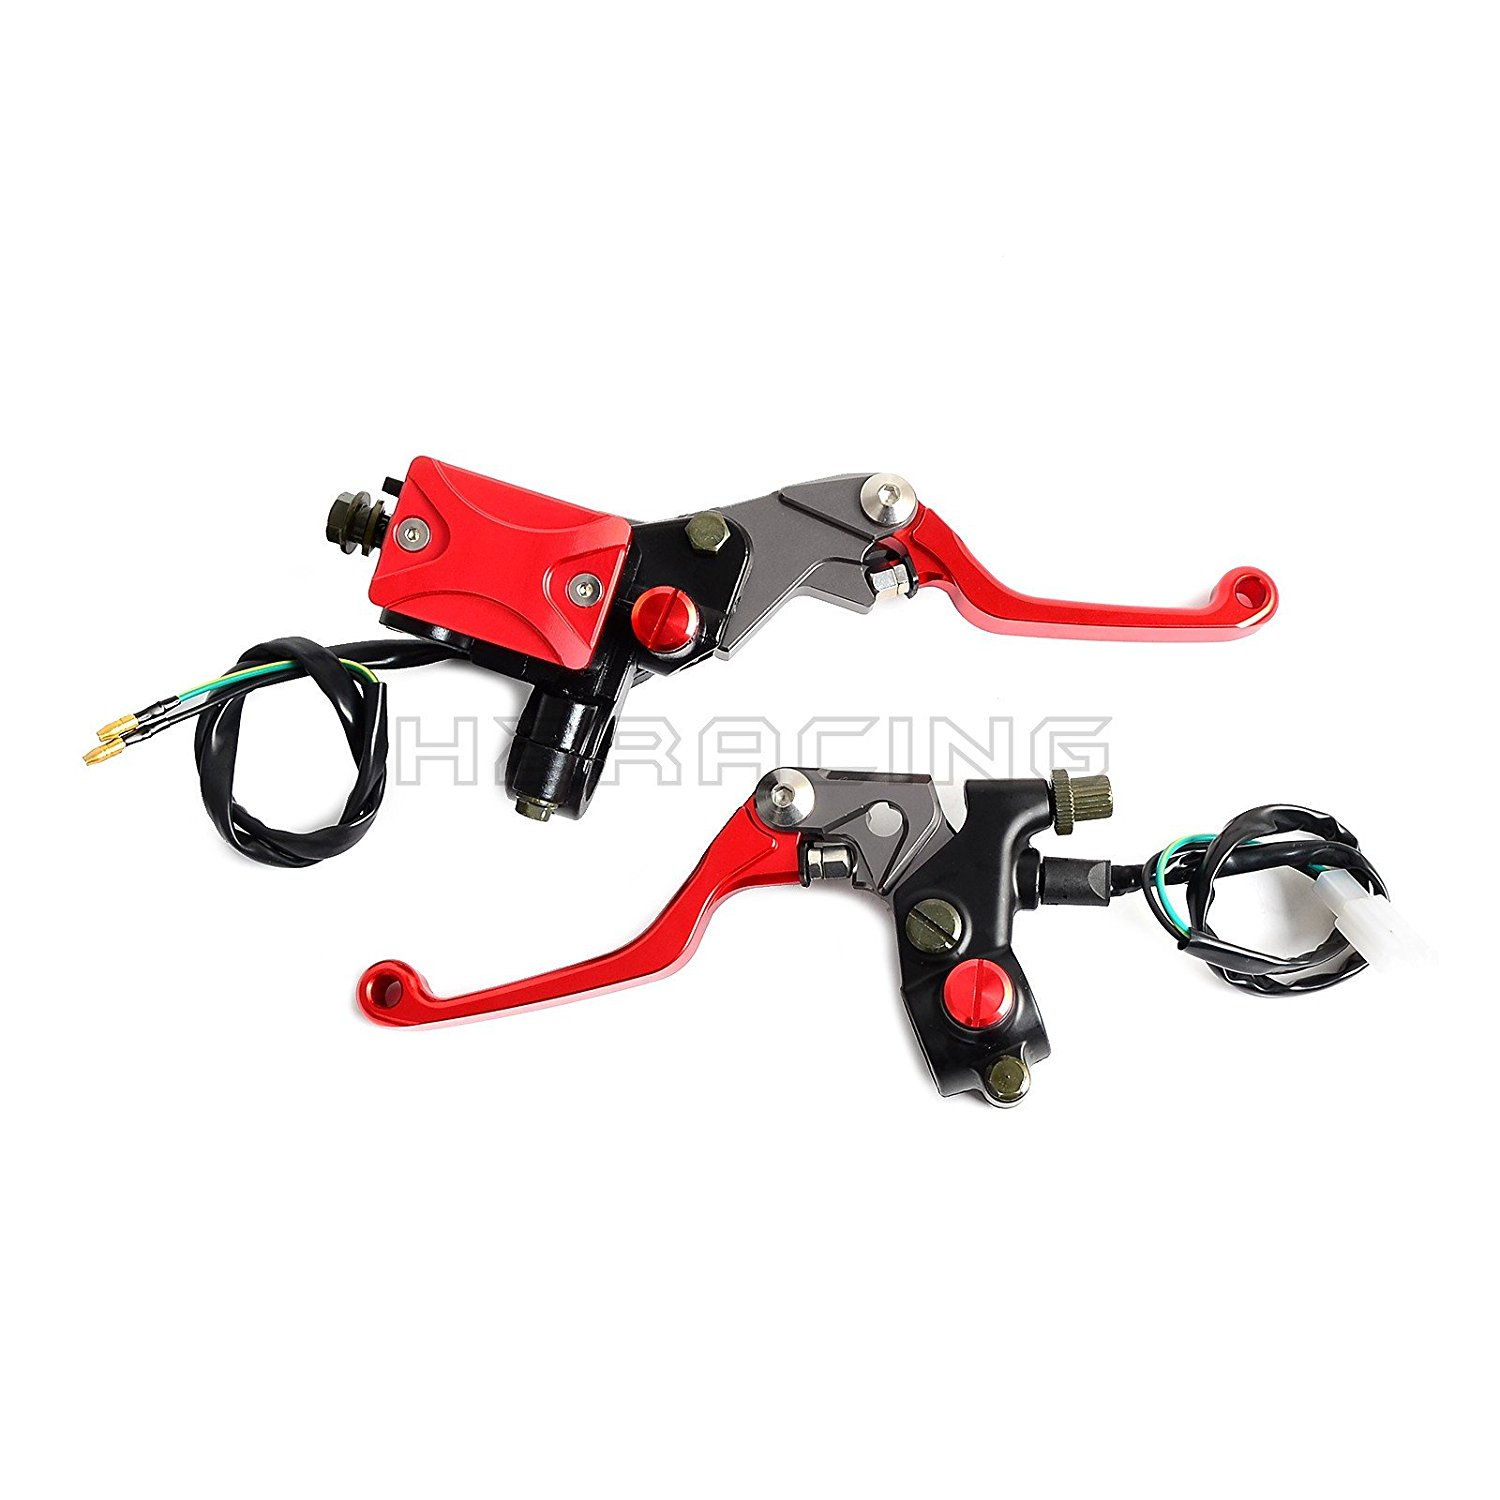 H2RACING Universal 22mm Anodized Red Brake Master Cylinder & Cable Clutch Perch Levers for Honda CRF250R/X 2004-2015 CRF125F/150R/450R,X CRF250L/M CBR250R/300R XR230/250 SL230,CRM250R/AR